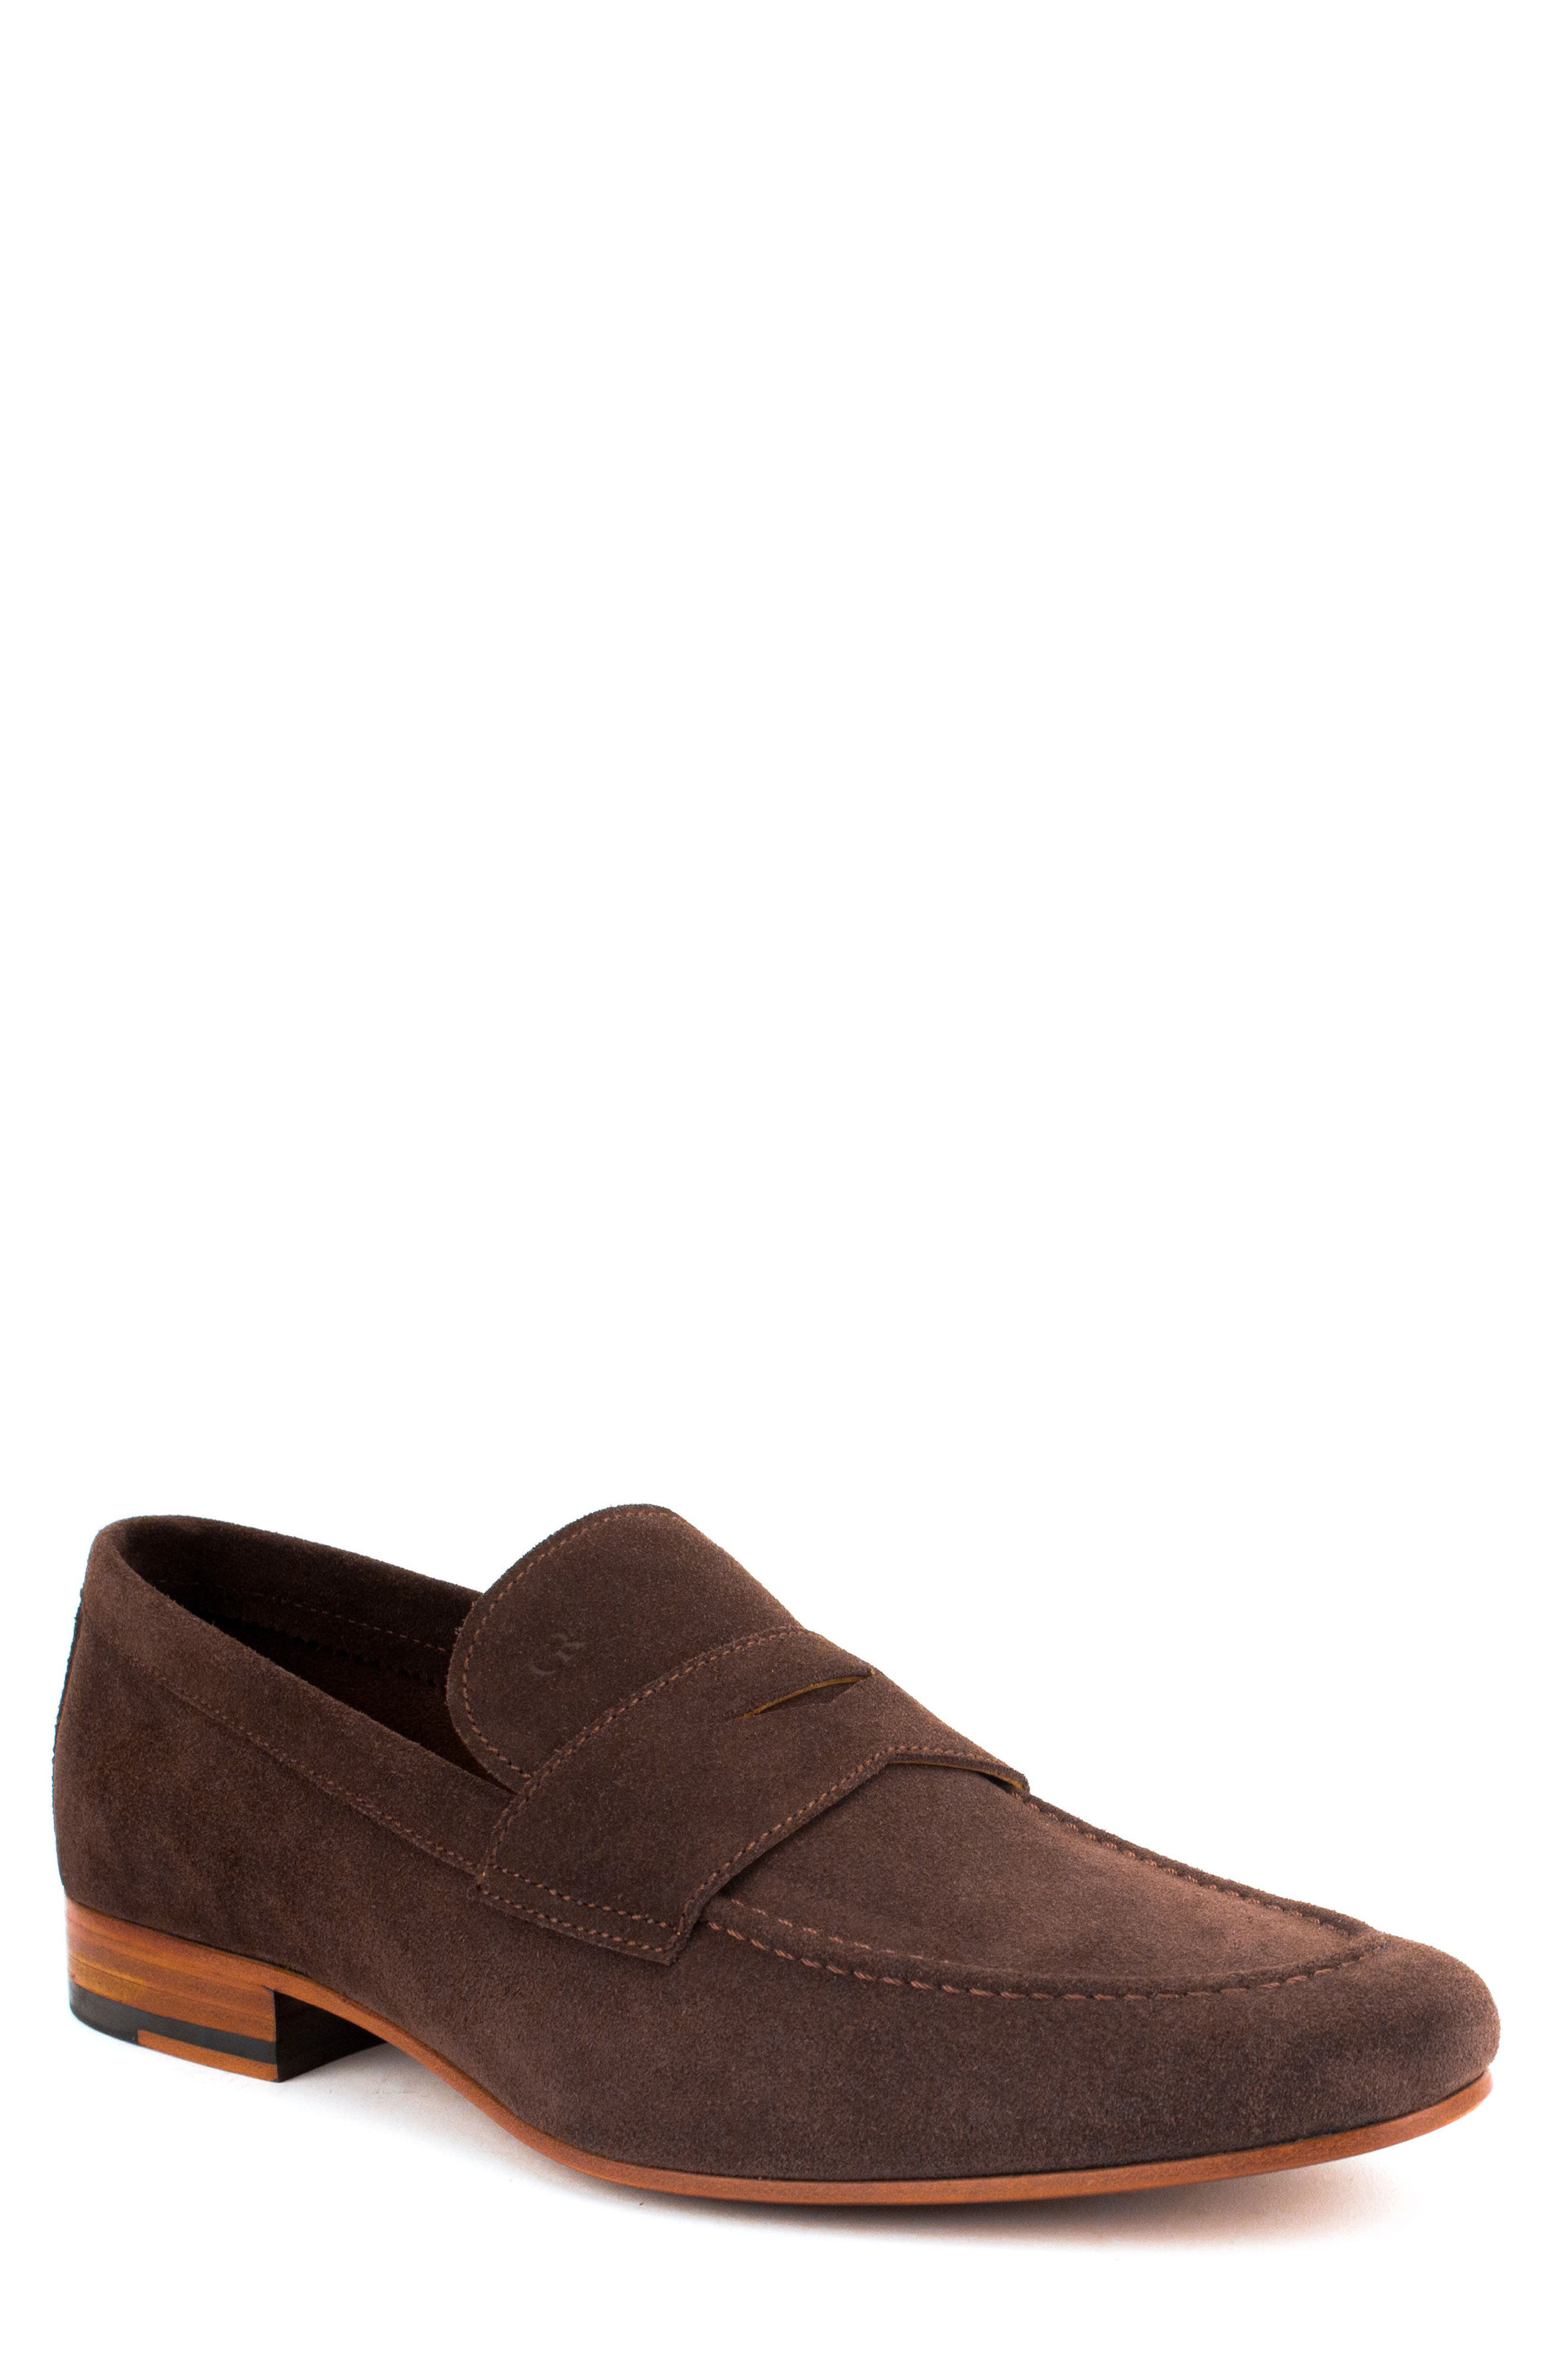 Wilfred Penny Loafer,                         Main,                         color, 206